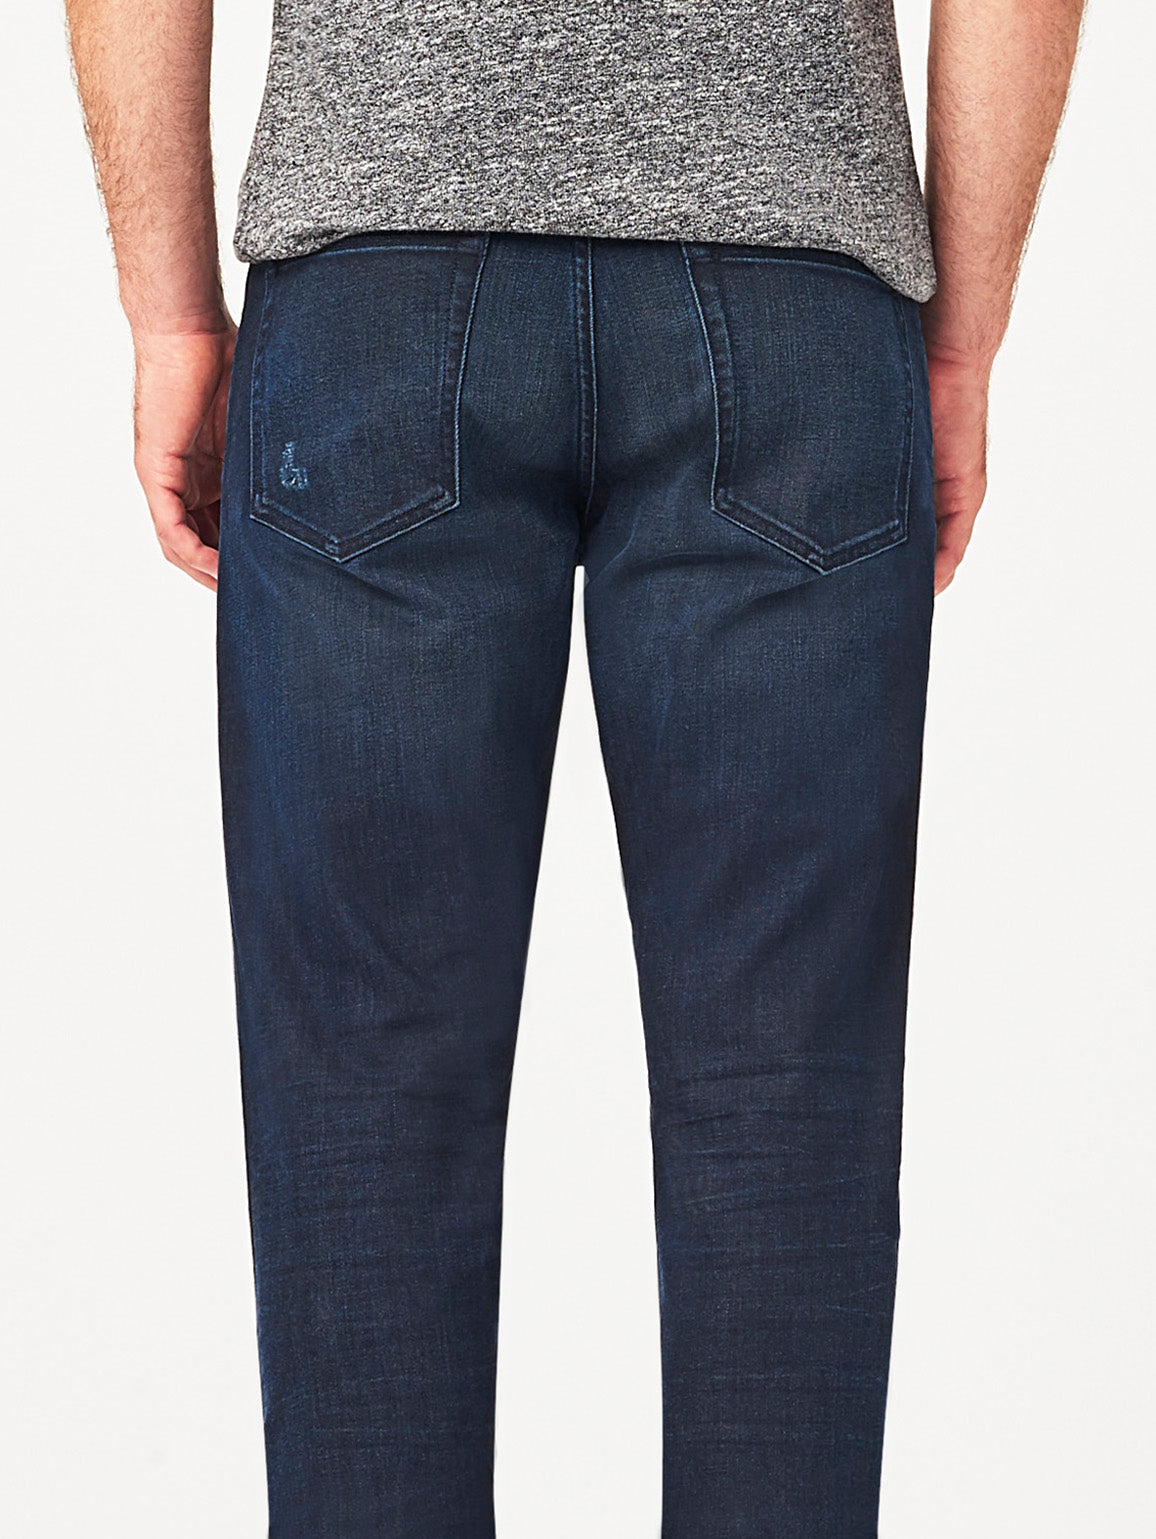 Men - Straight Dark Blue Denim - Avery Straight Sepia - Dl1961